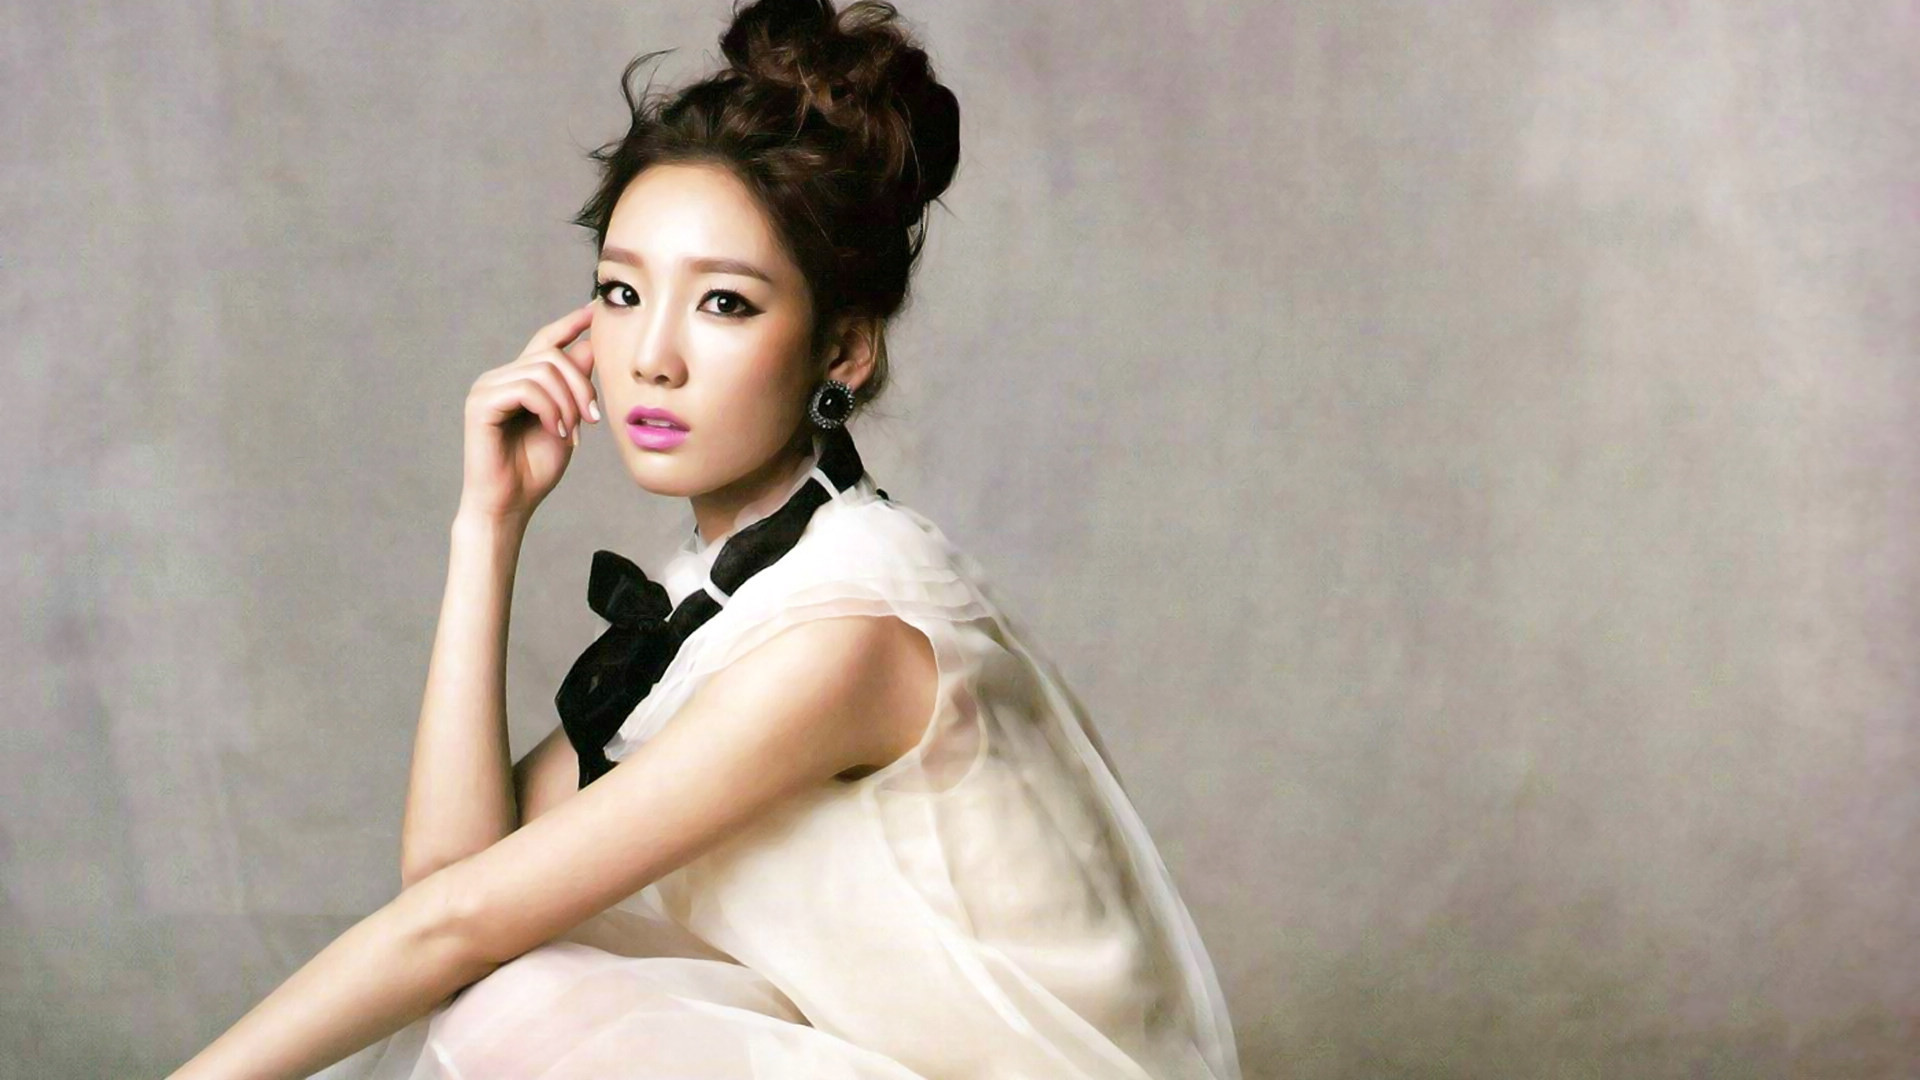 1920x1080 Jessica | Female Celebrities, Music, and Dance Steps | Pinterest .